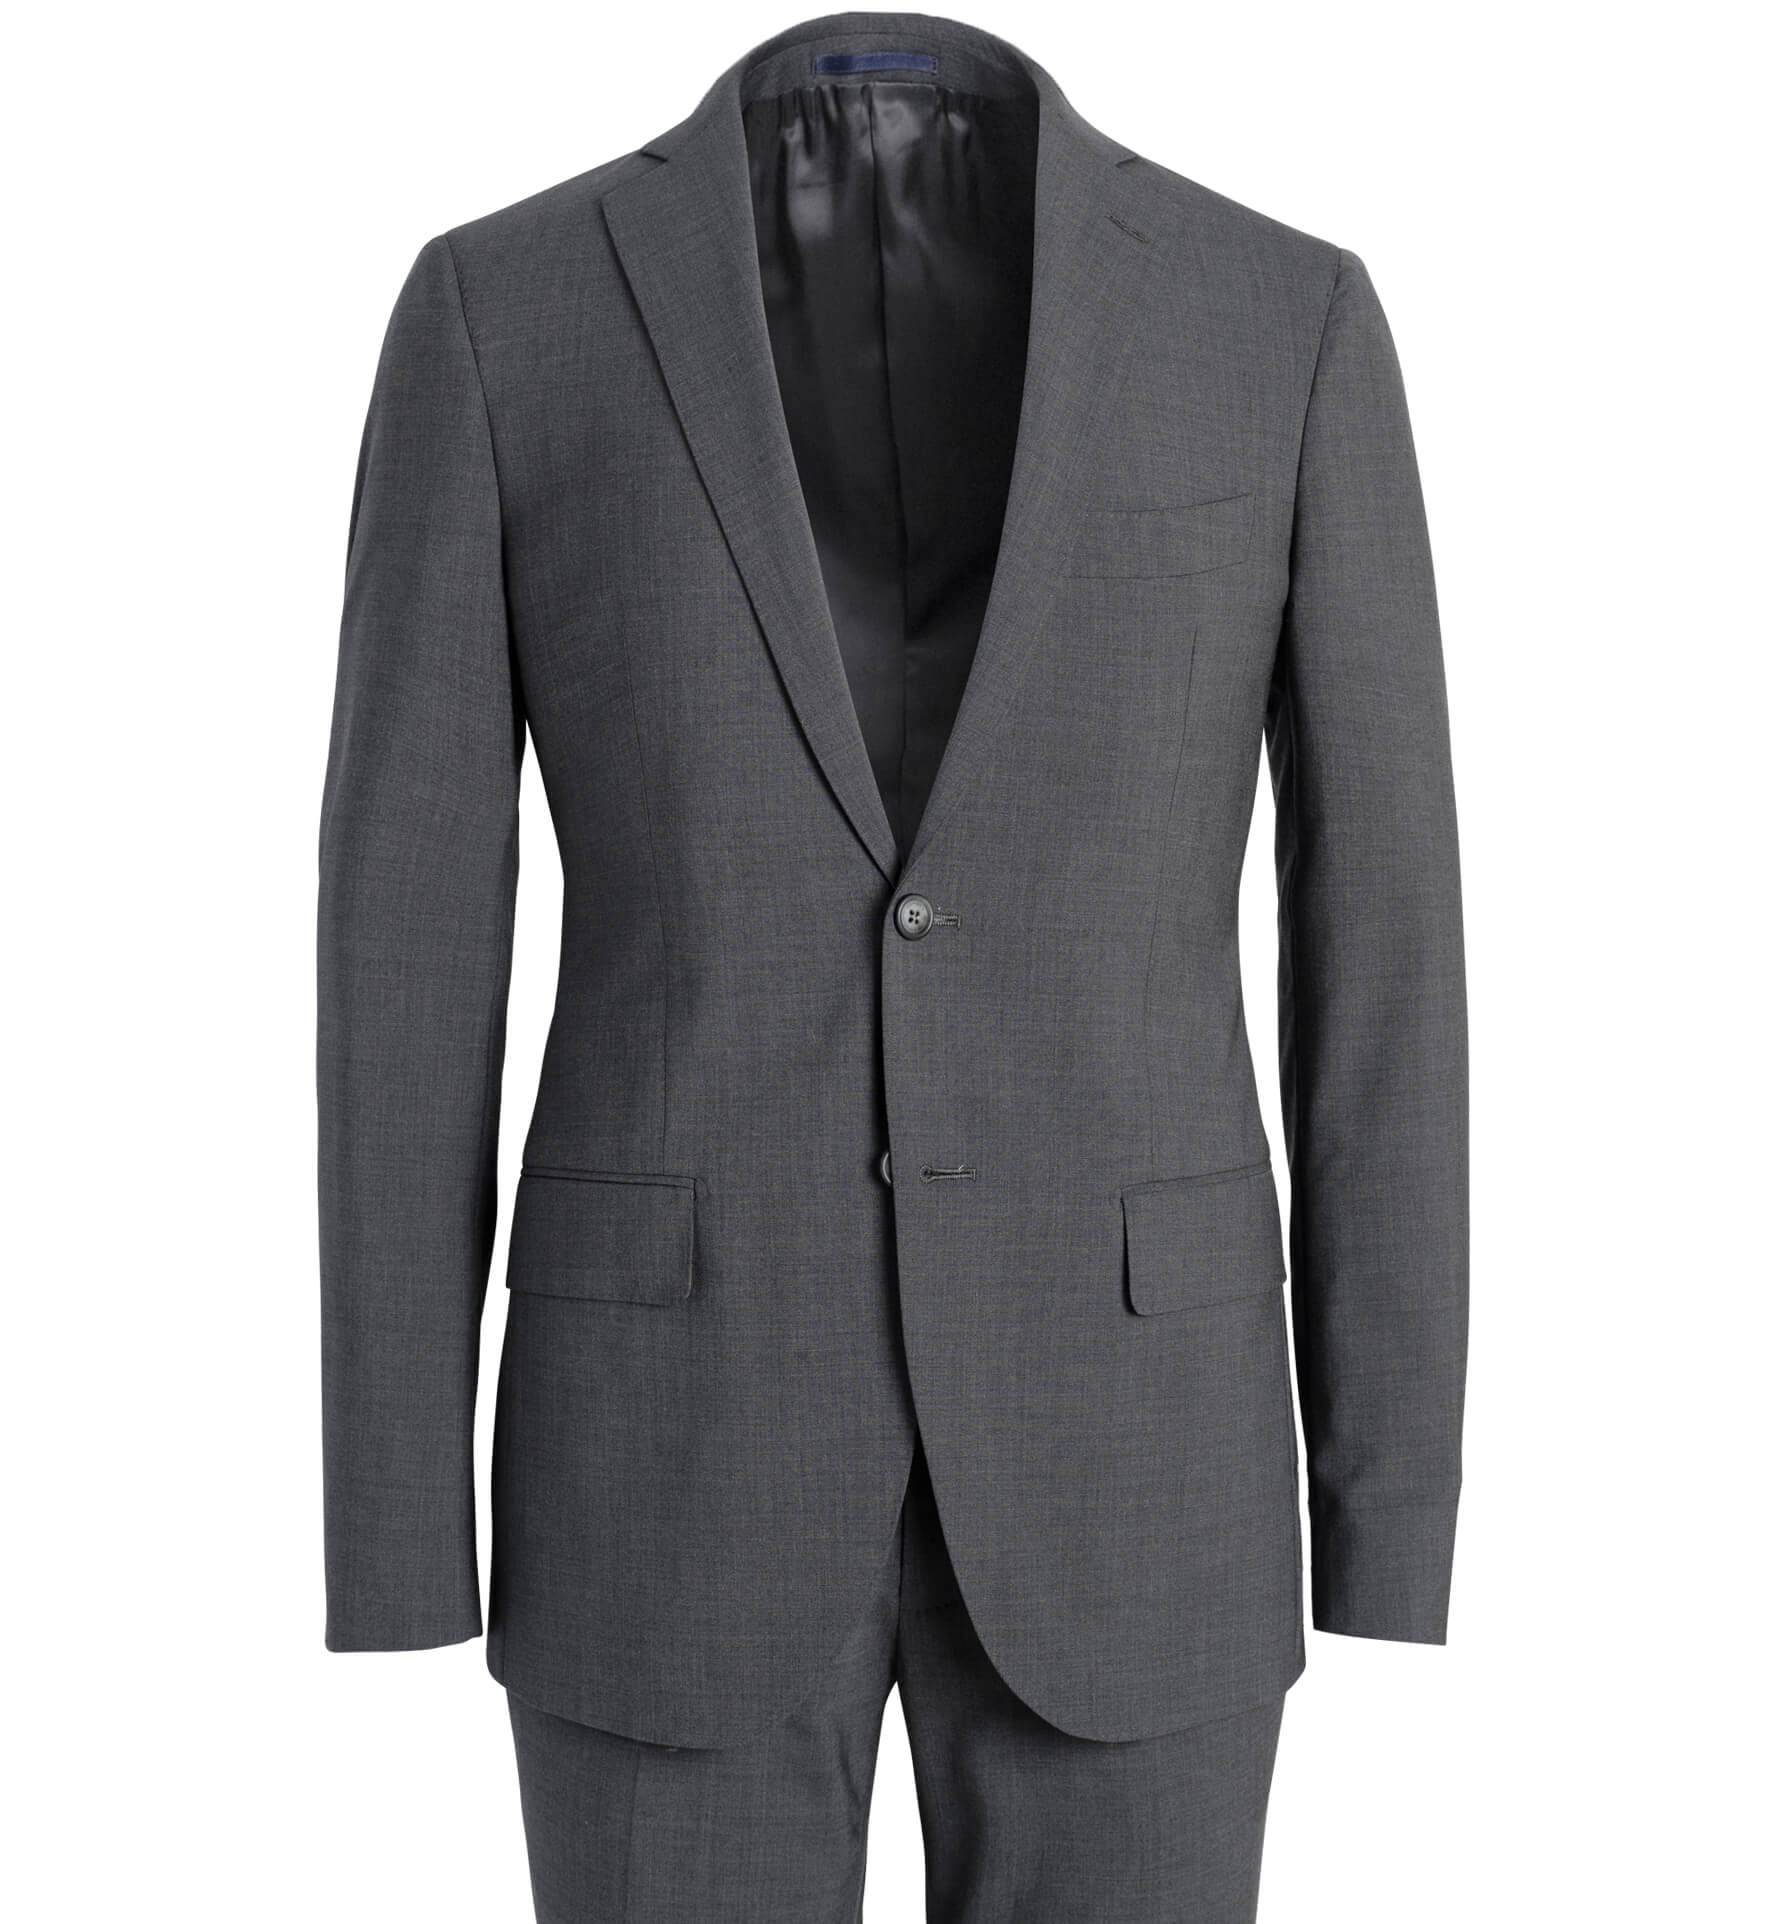 Zoom Image of Allen Stretch Grey Tropical Wool Suit